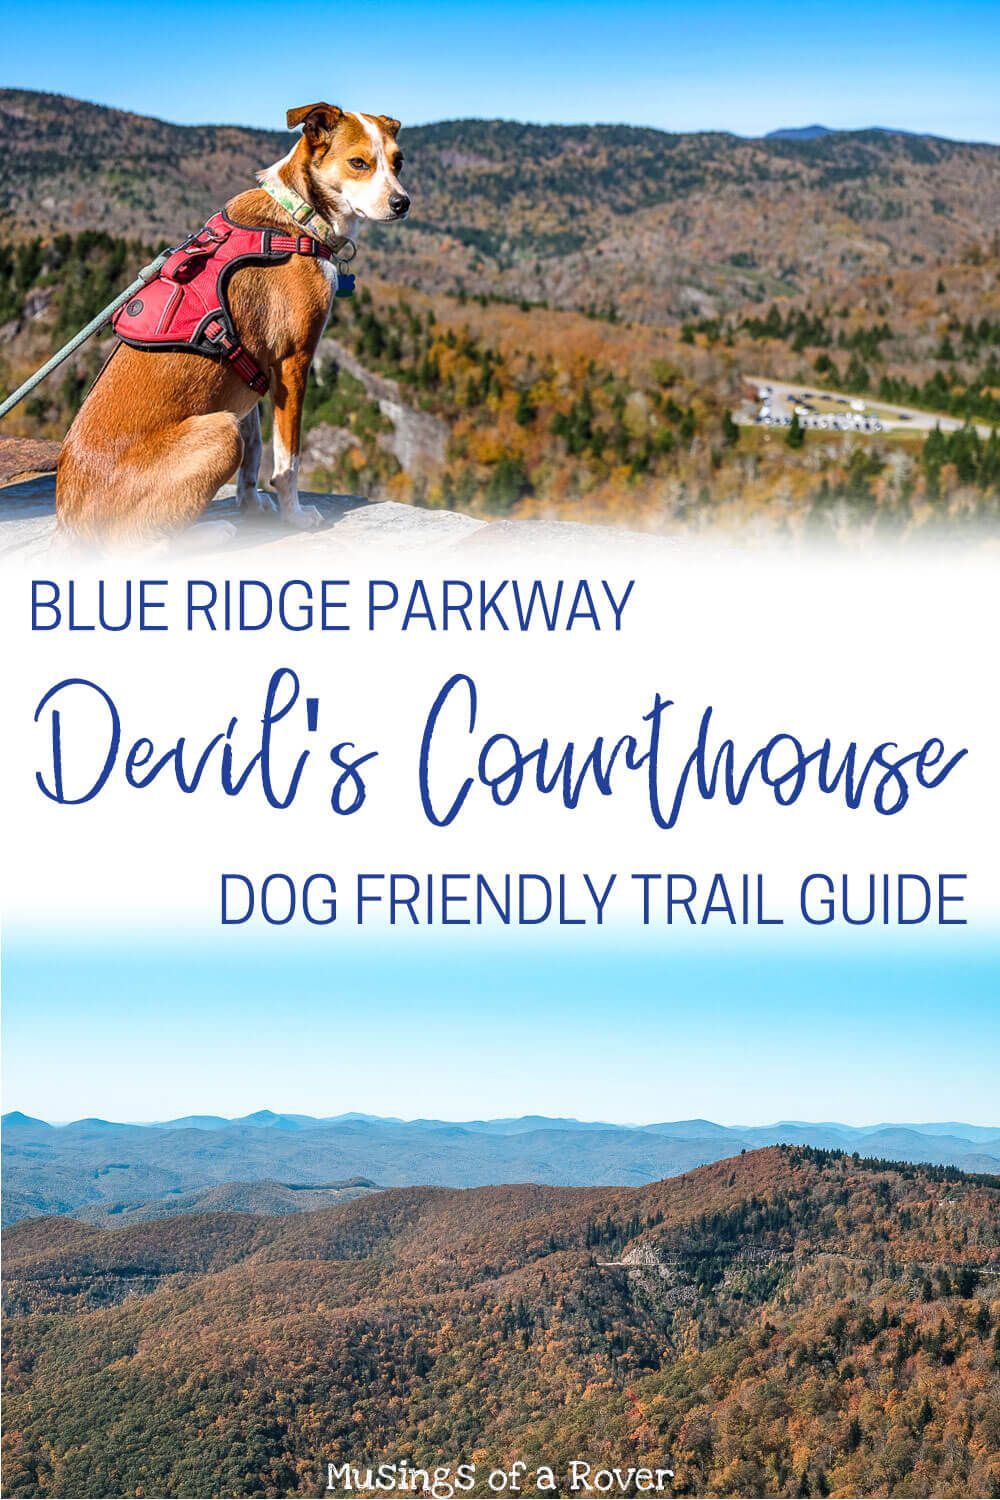 Looking for a day trip from Greenville, SC. One of the best things to do is to head to the Blue Ridge Parkway and hike this easy trail to to the top of the Devil's Courthouse. This out and back hike is less than a mile and has some of the best views in the region. And it's dog friendly!